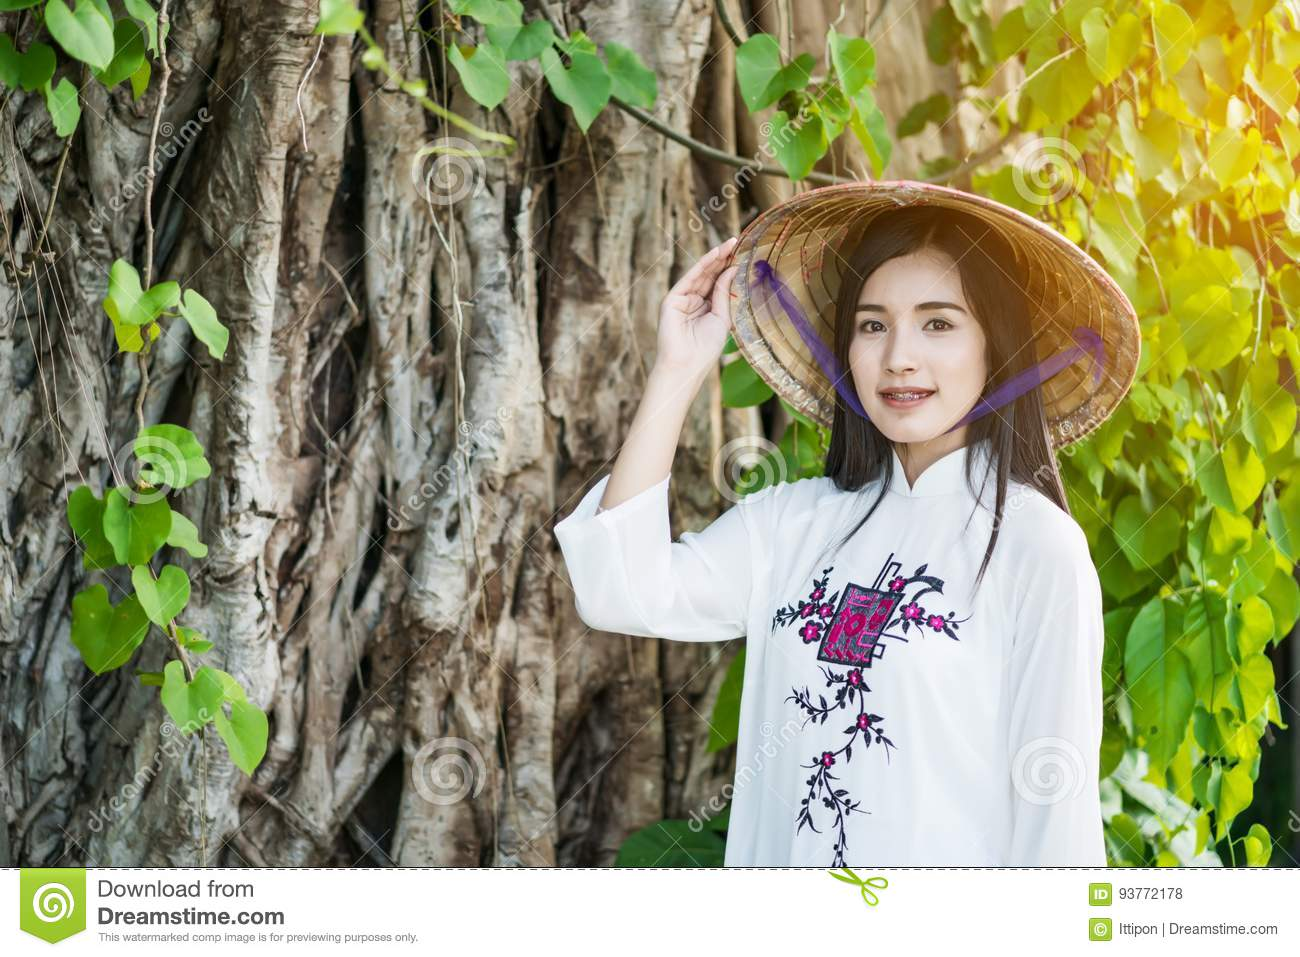 Woman with Vietnam culture traditional dress